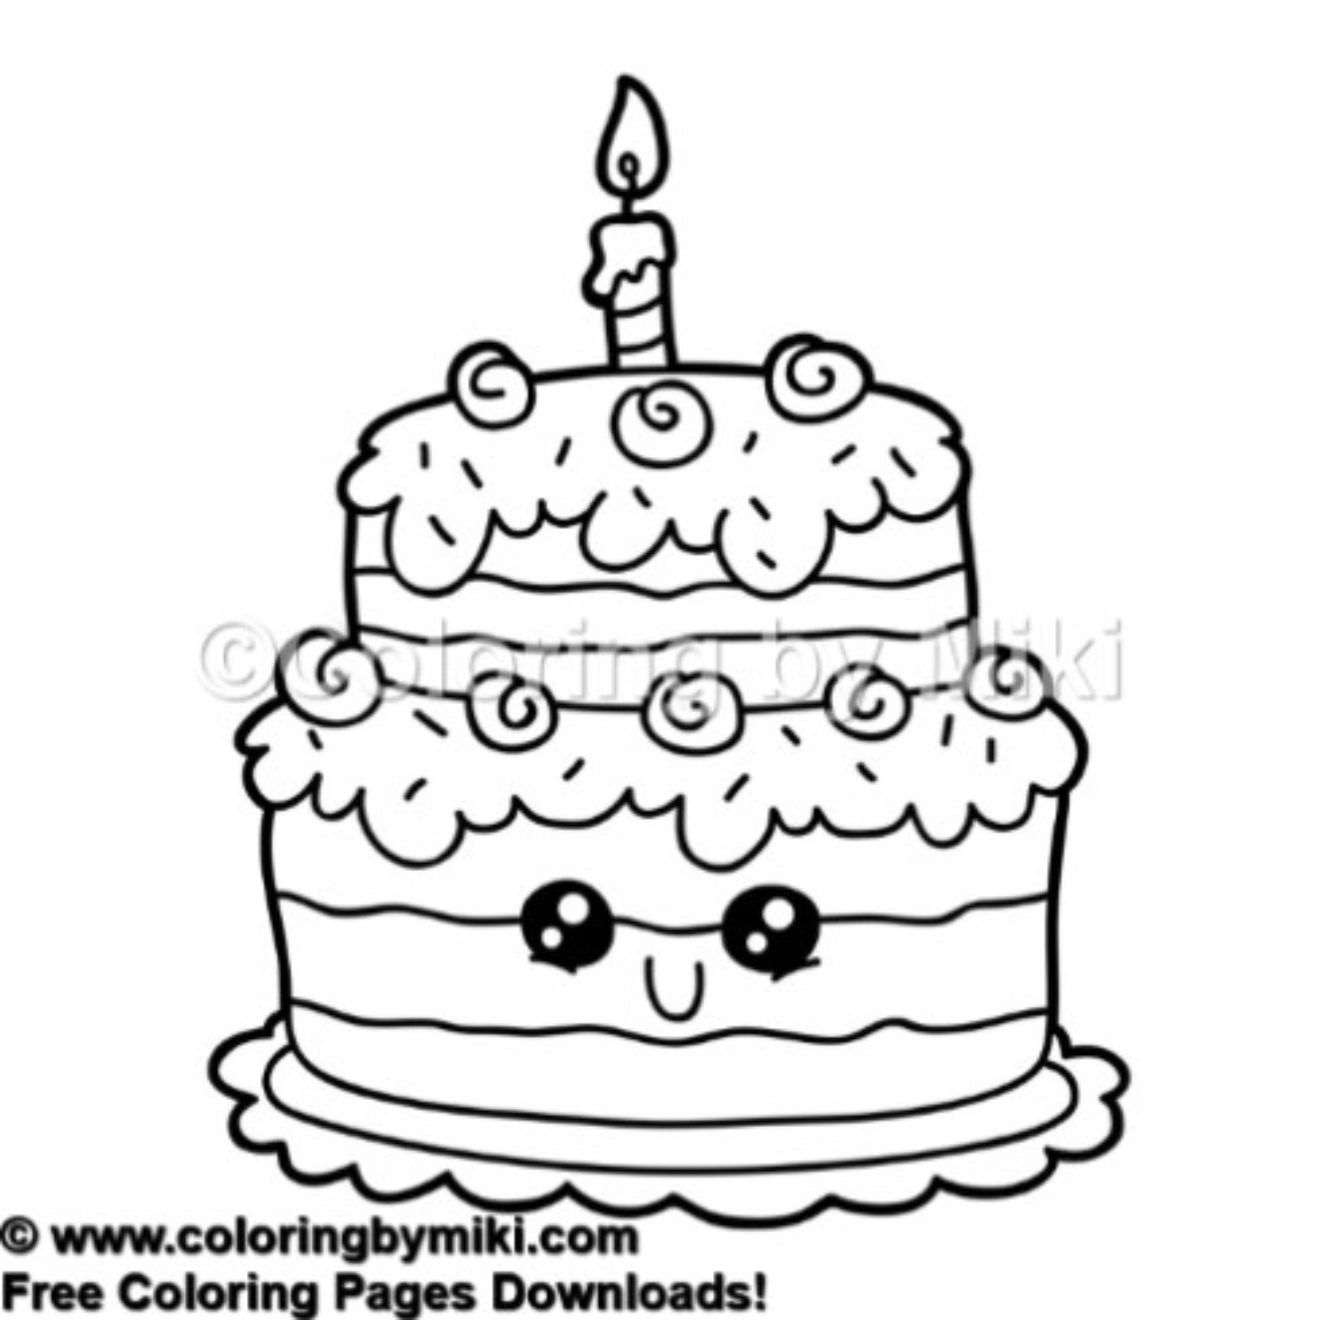 Cute Birthday Cake Coloring Page 527 Kidsactivities